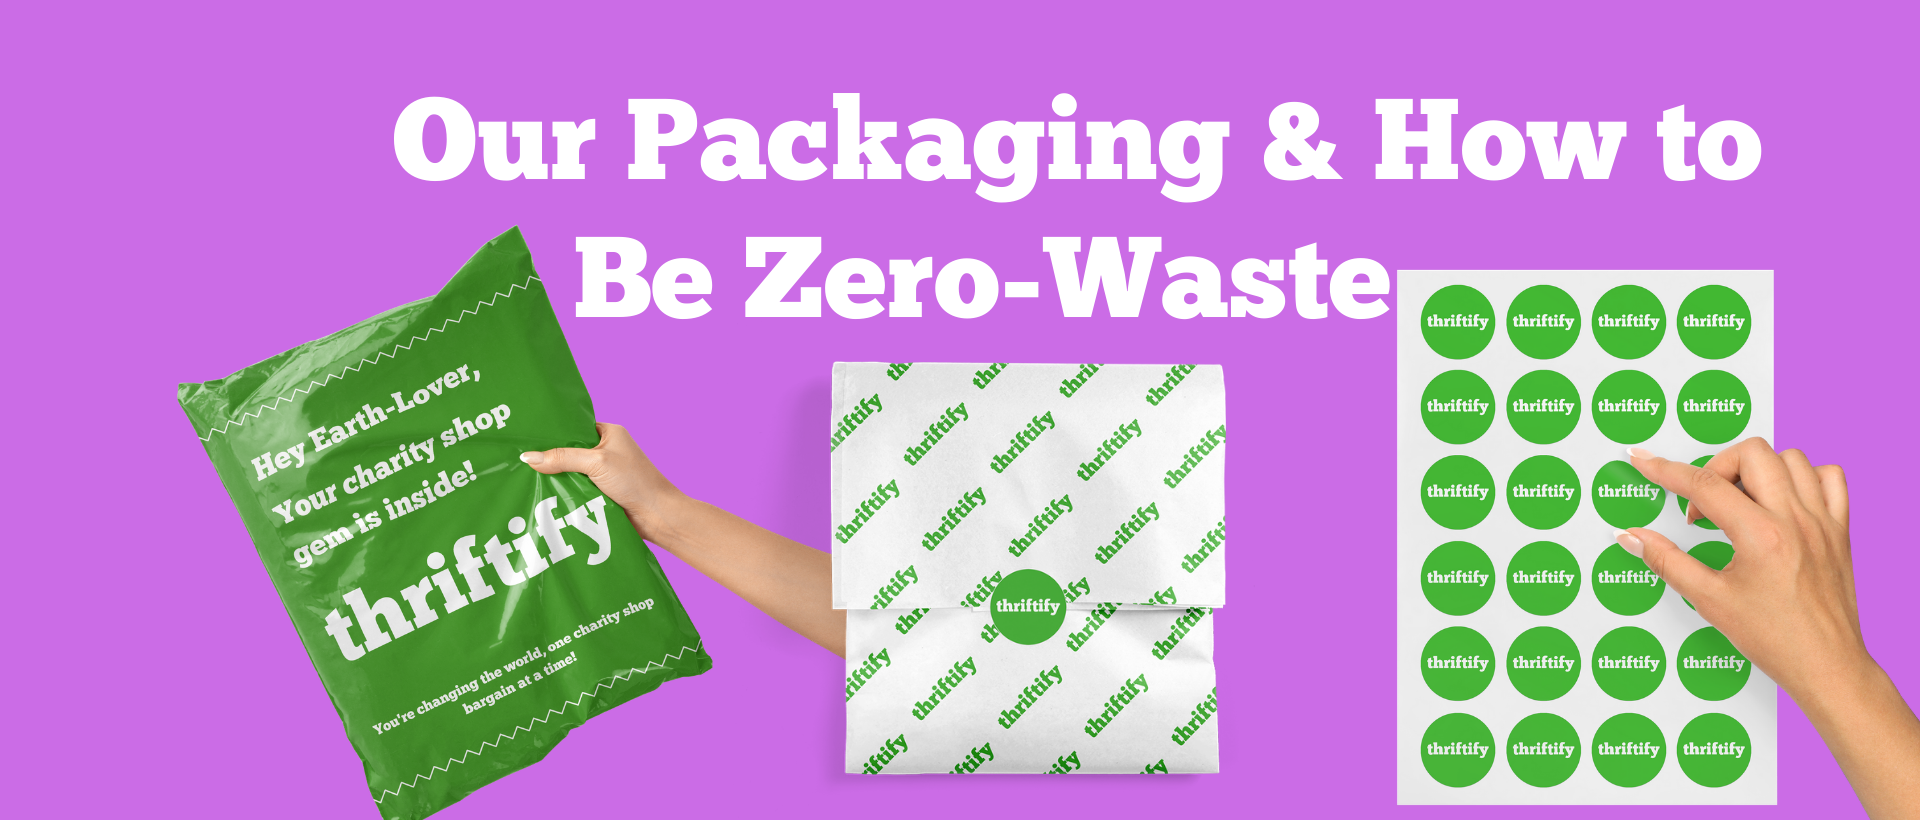 Our Packaging & How to Be Zero-Waste